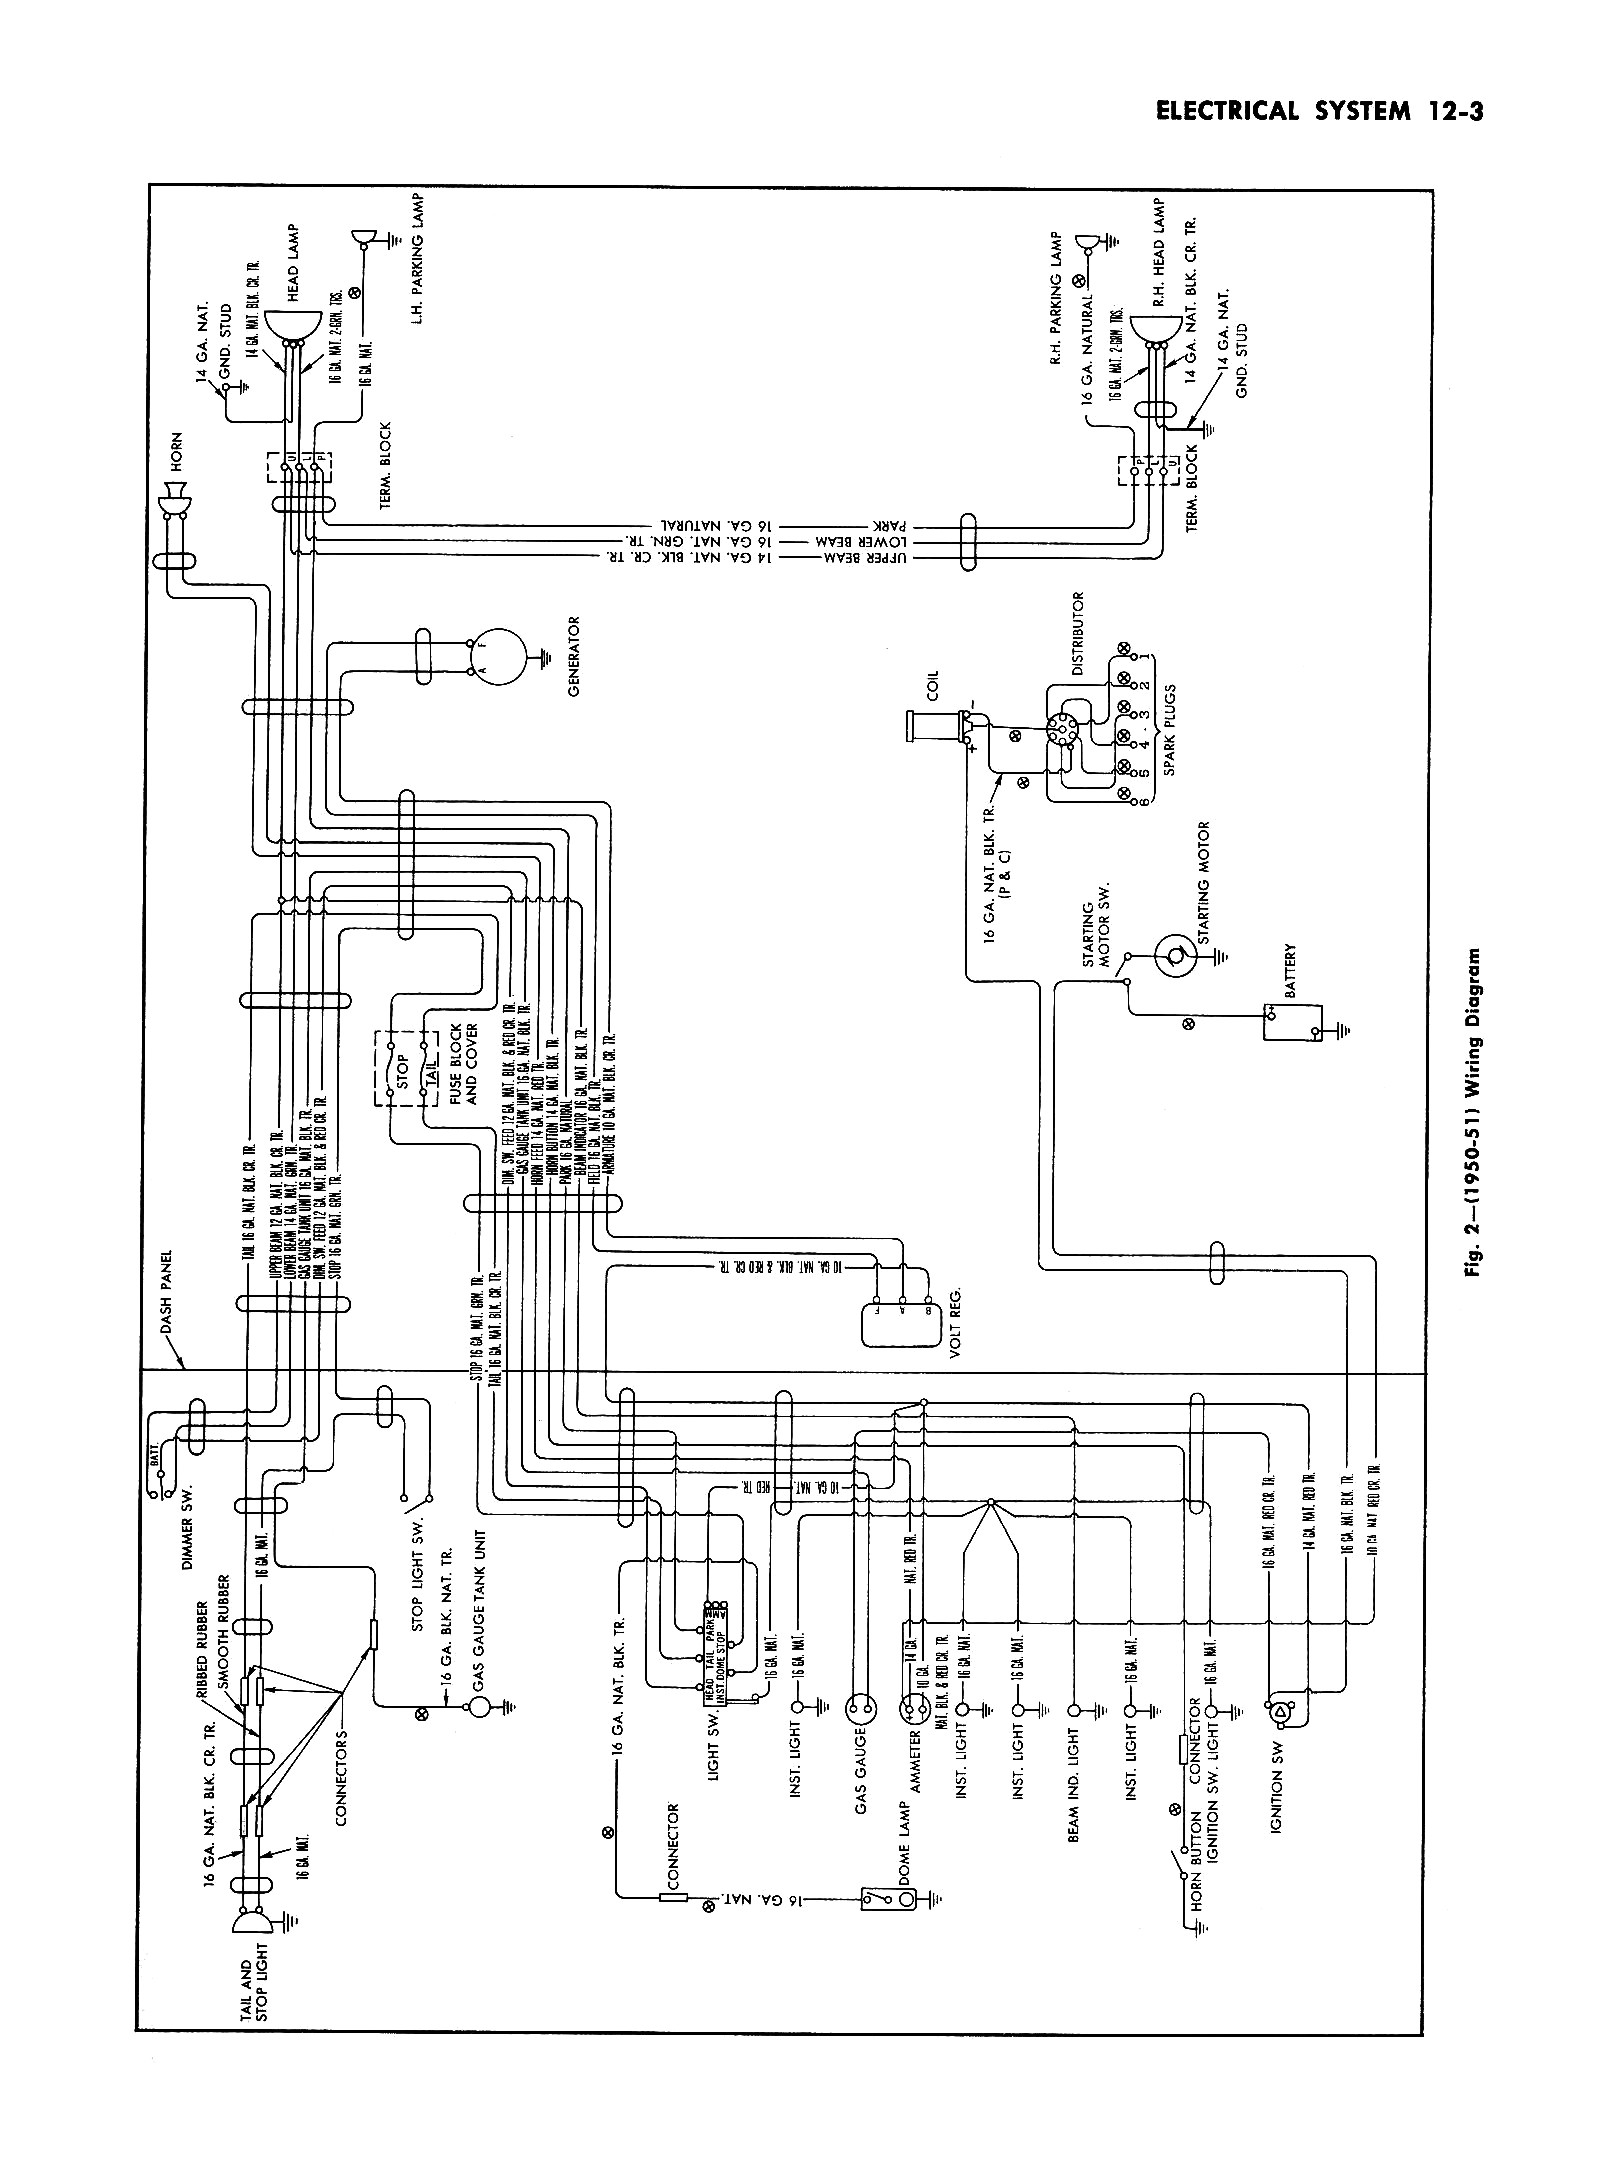 chevy wiring diagrams rh chevy oldcarmanualproject com Ford 8N Distributor Wiring Ford 8N Distributor Wiring